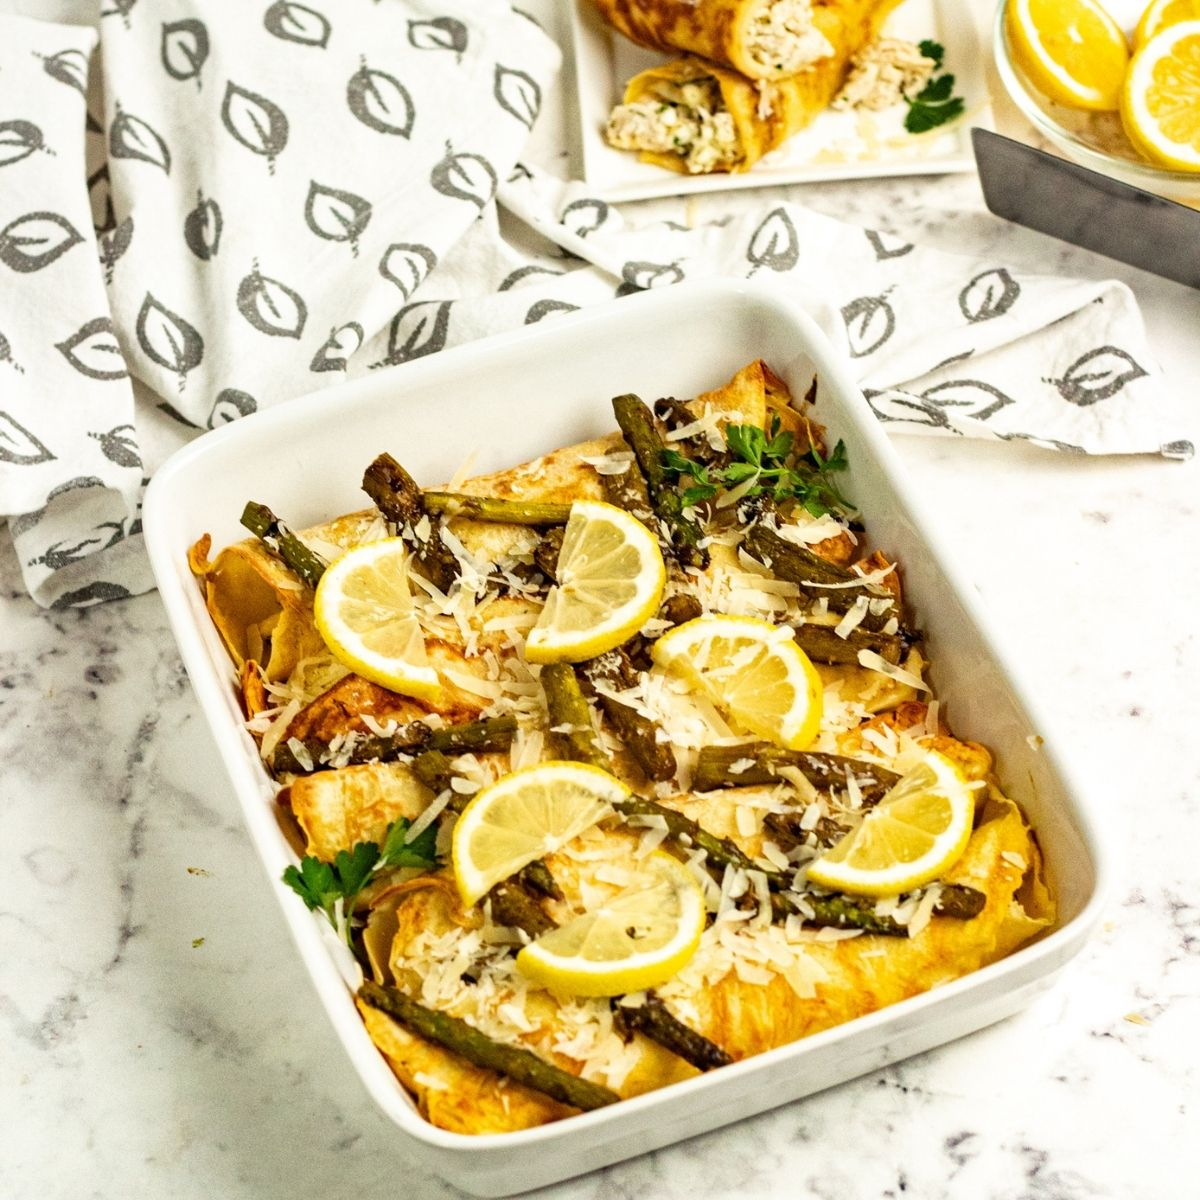 Casserole with stuffed crepes, asparagus and lemon slices